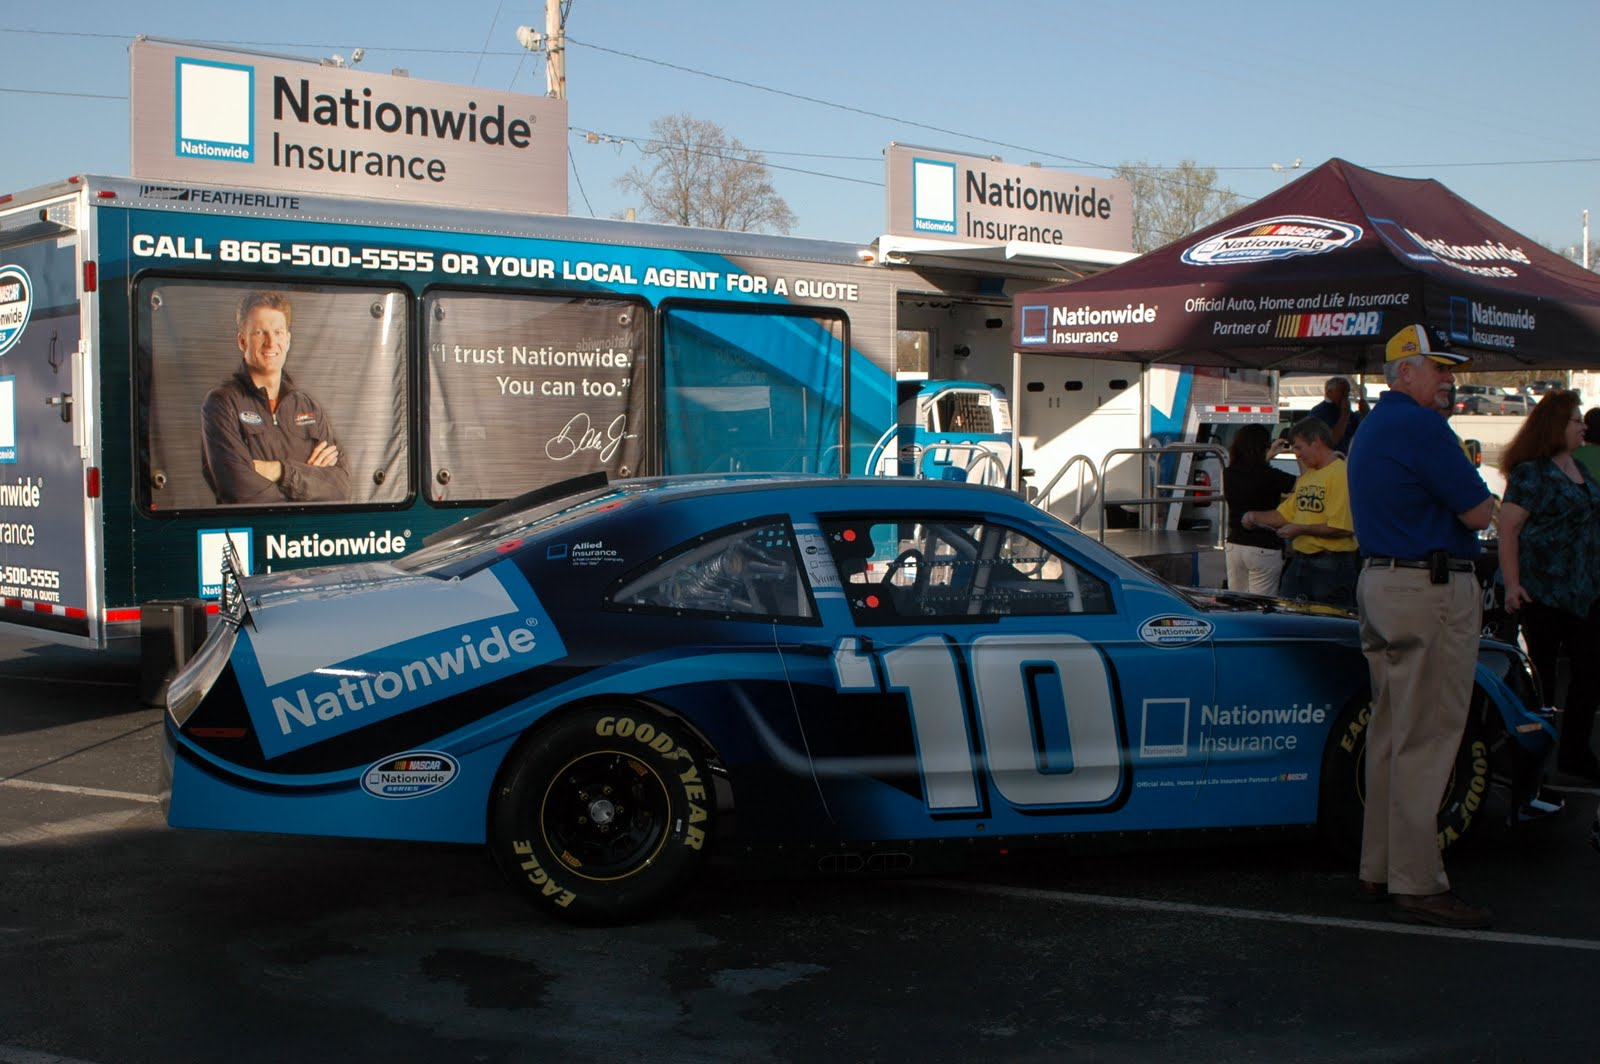 Nationwide Auto Quote Behind The Scenes With Nascar And Series Sponsors